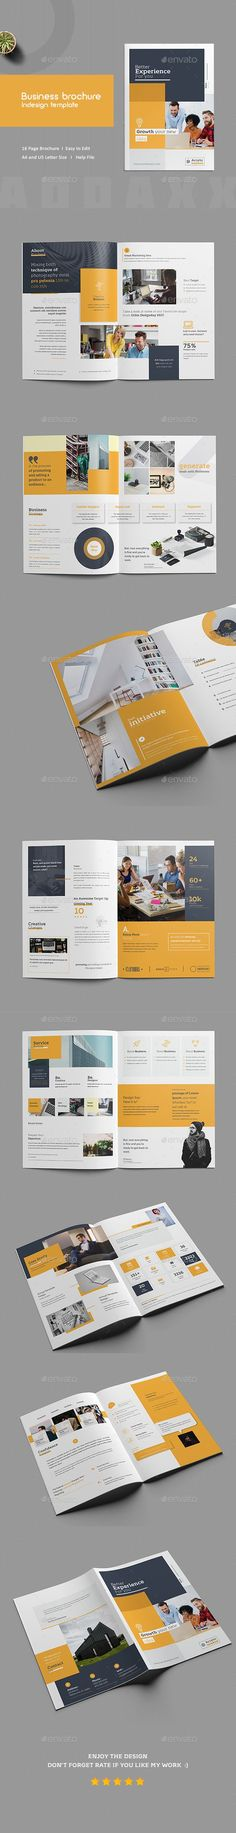 Business Brochure InDesign Template — InDesign INDD #us letter #professional • Download ➝ https://graphicriver.net/item/business-brochure-indesign-template/21764777?ref=pxcr